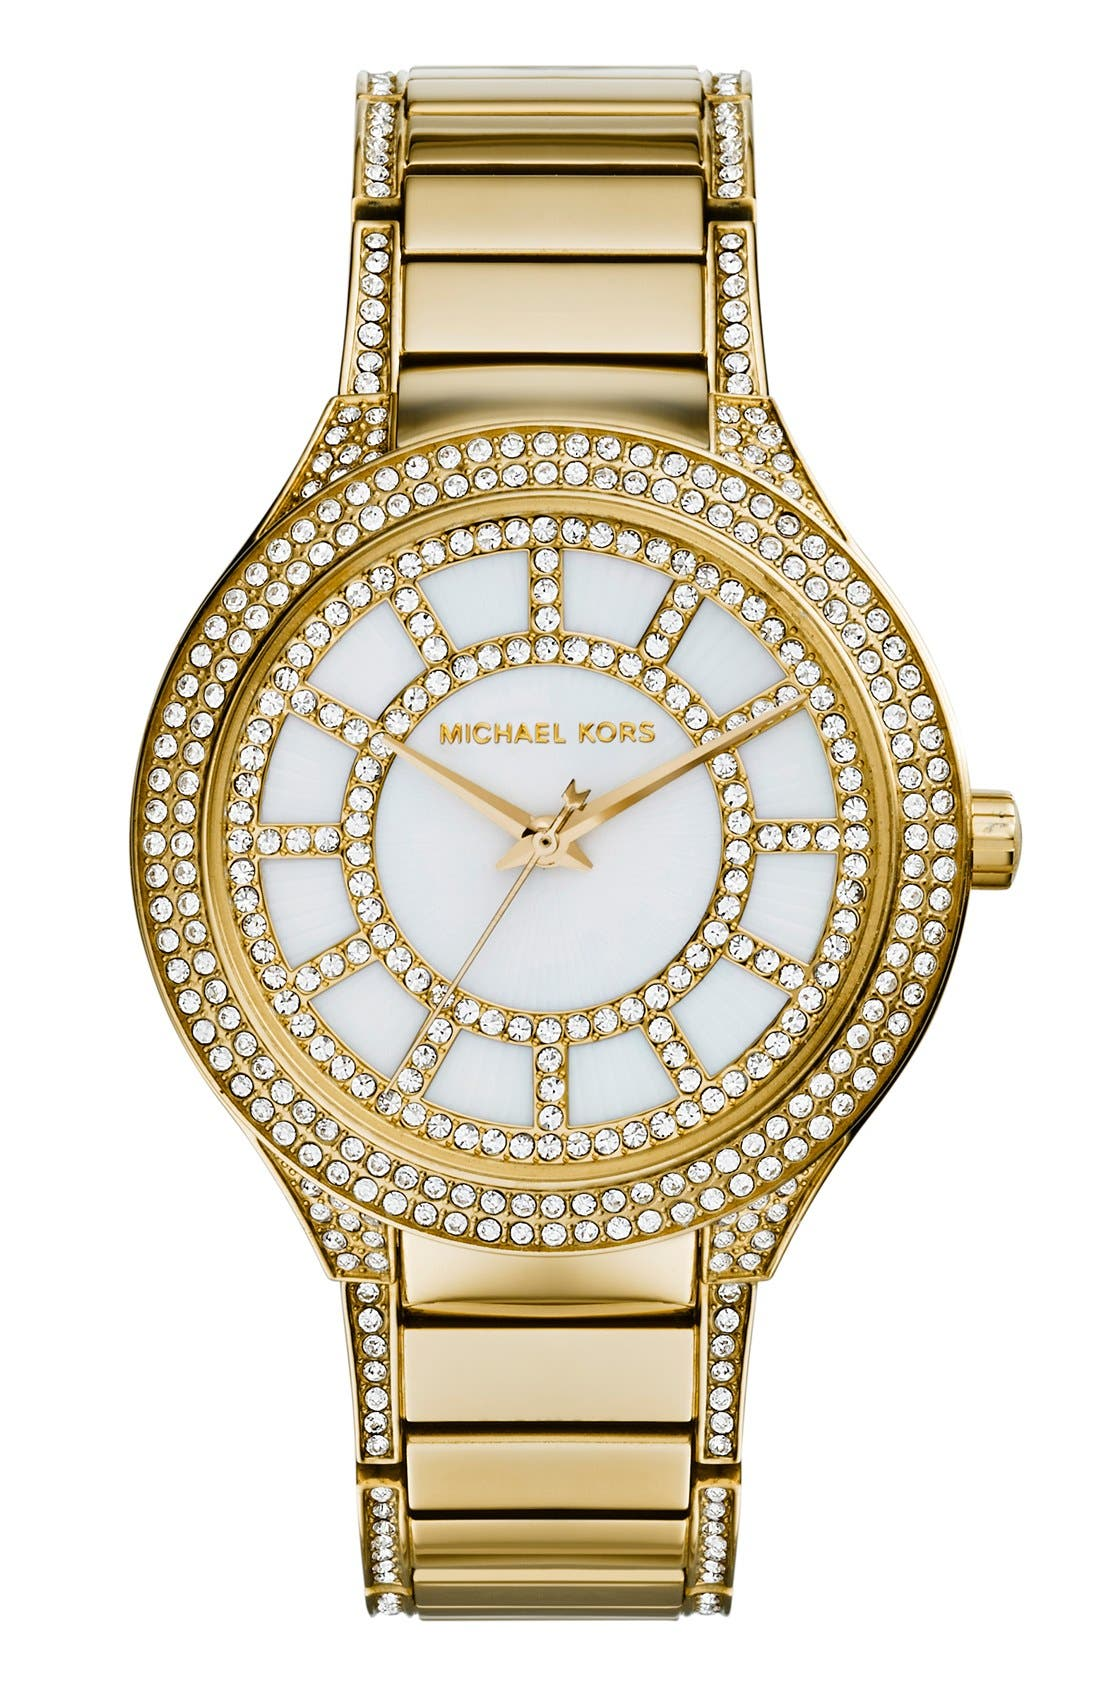 Main Image - Michael Kors 'Kerry' Crystal Accent Bracelet Watch, 38mm